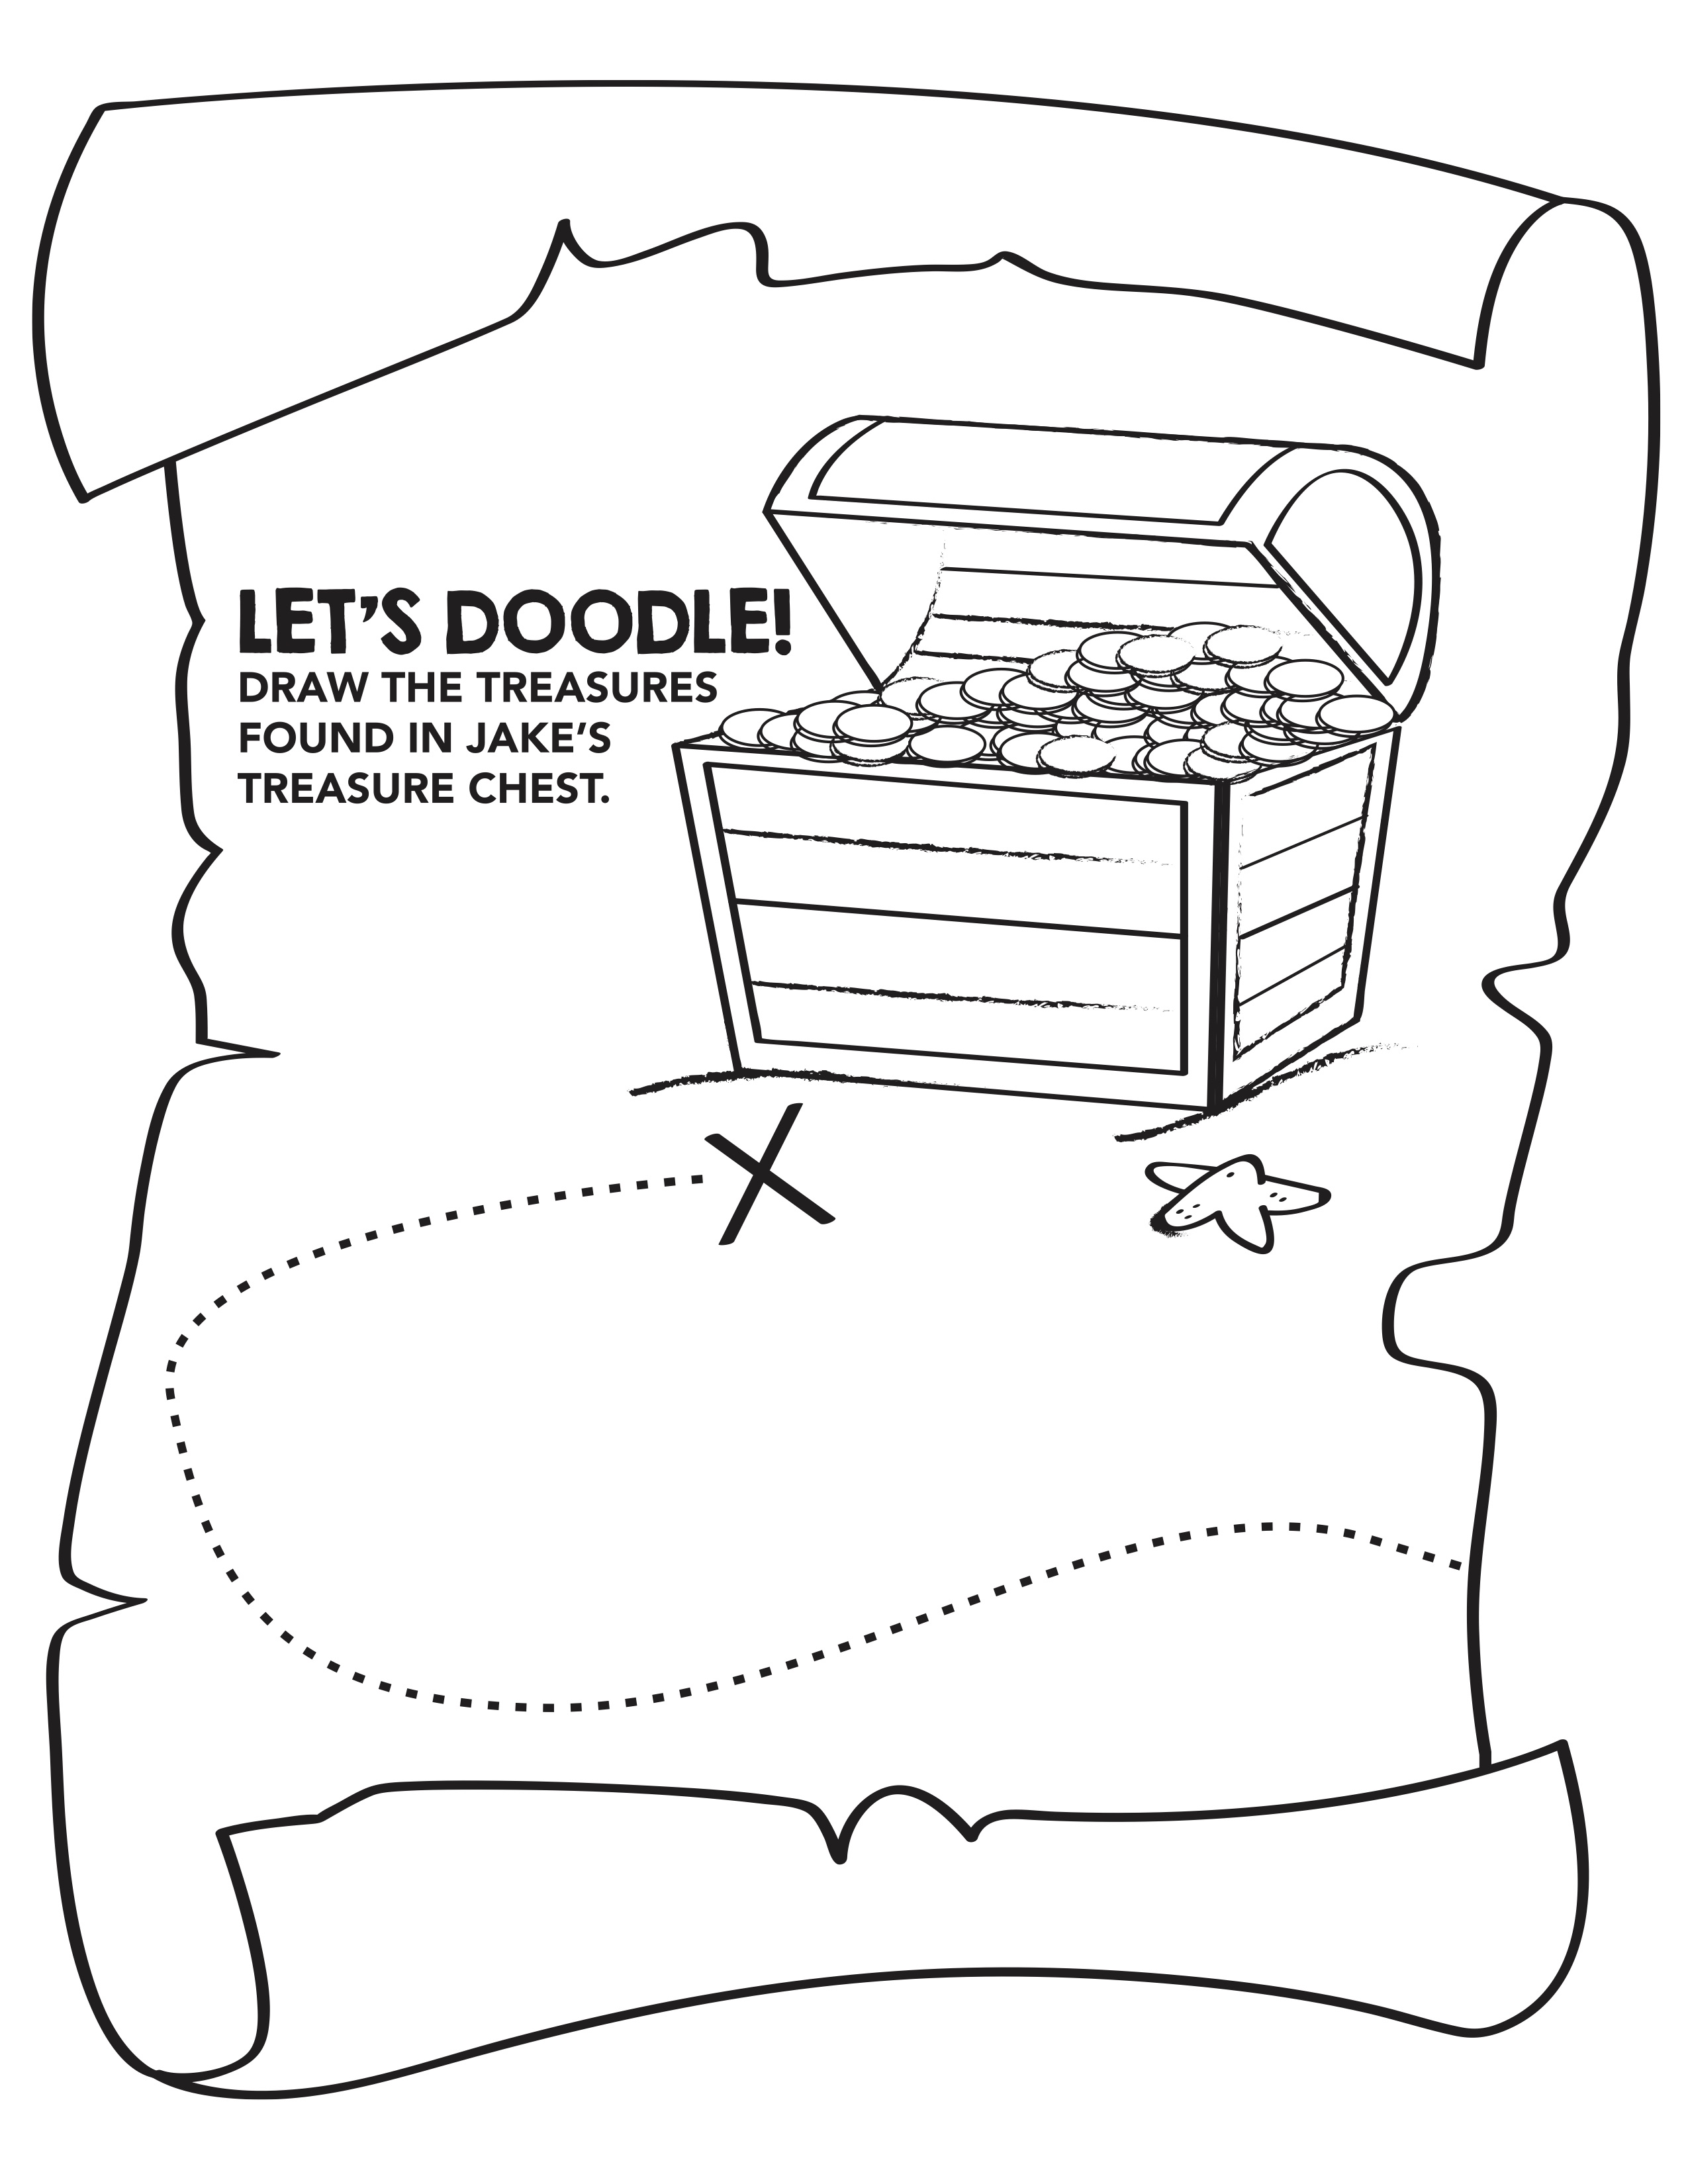 Kids' menu book page 8